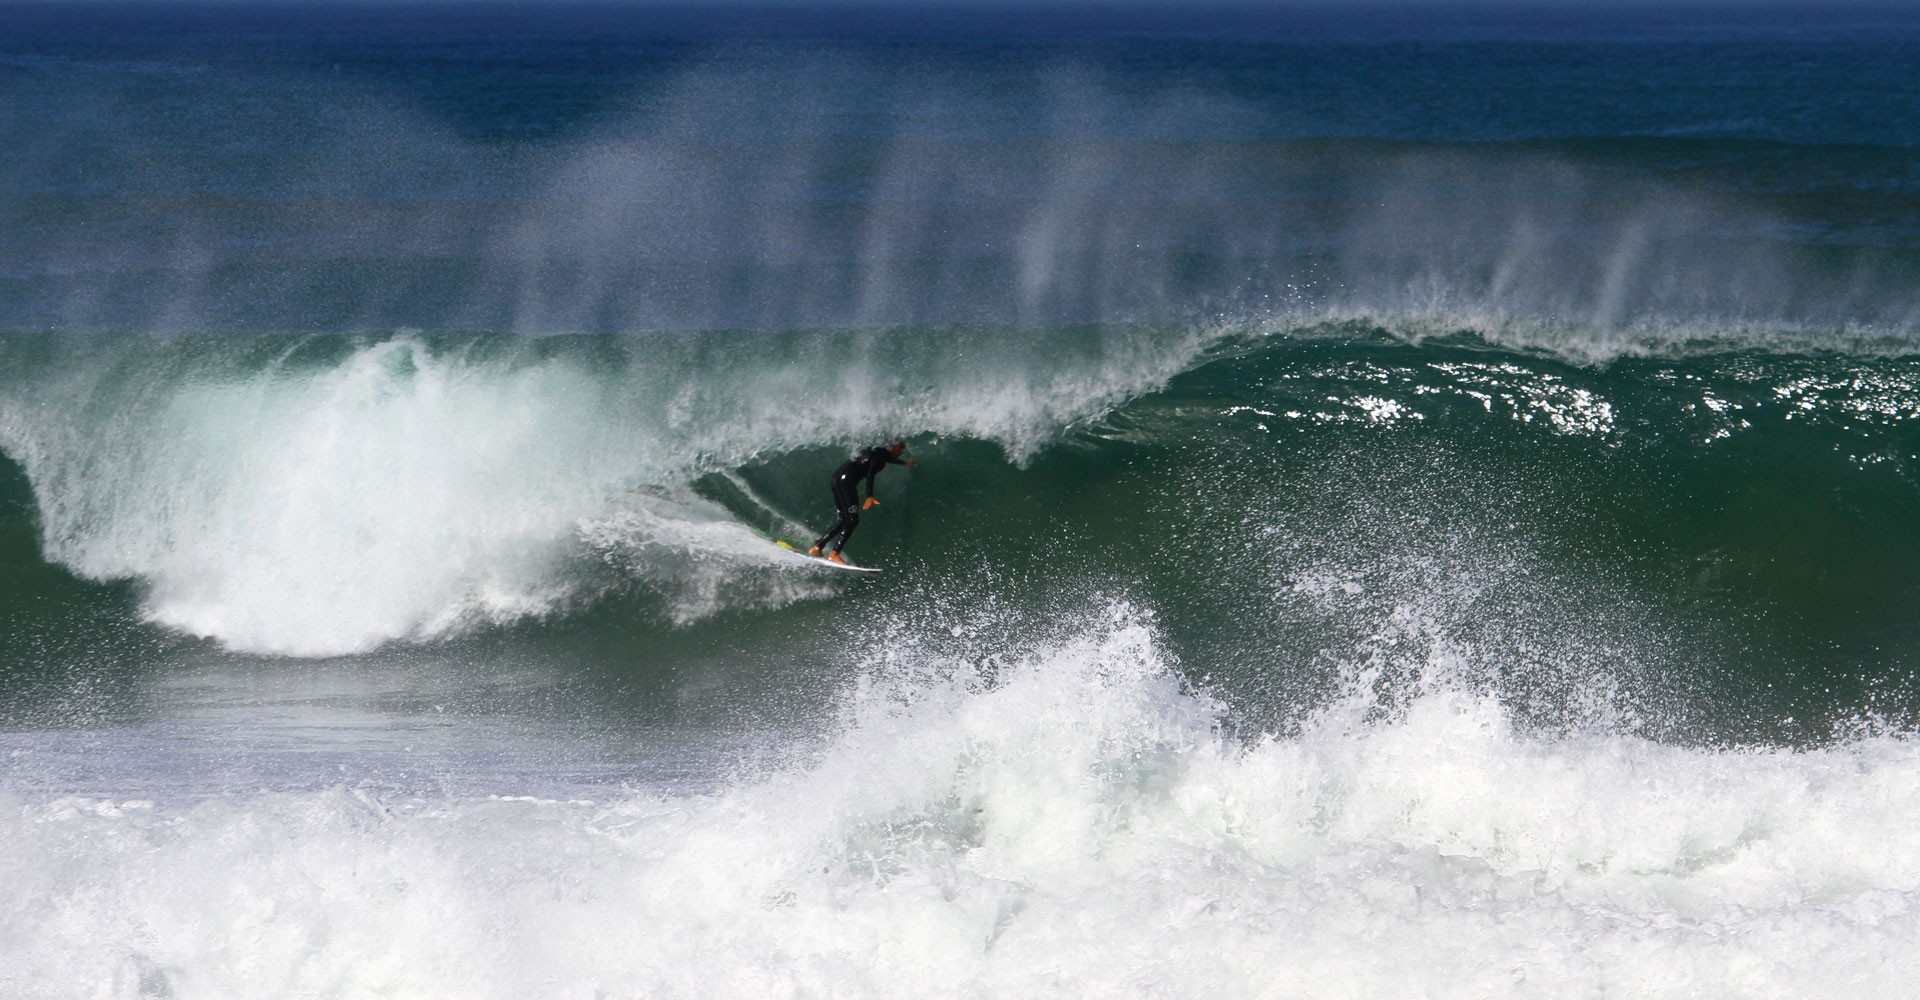 Portugal is one of the best destinations for surfing in Europe. Our surfboards love these waves.